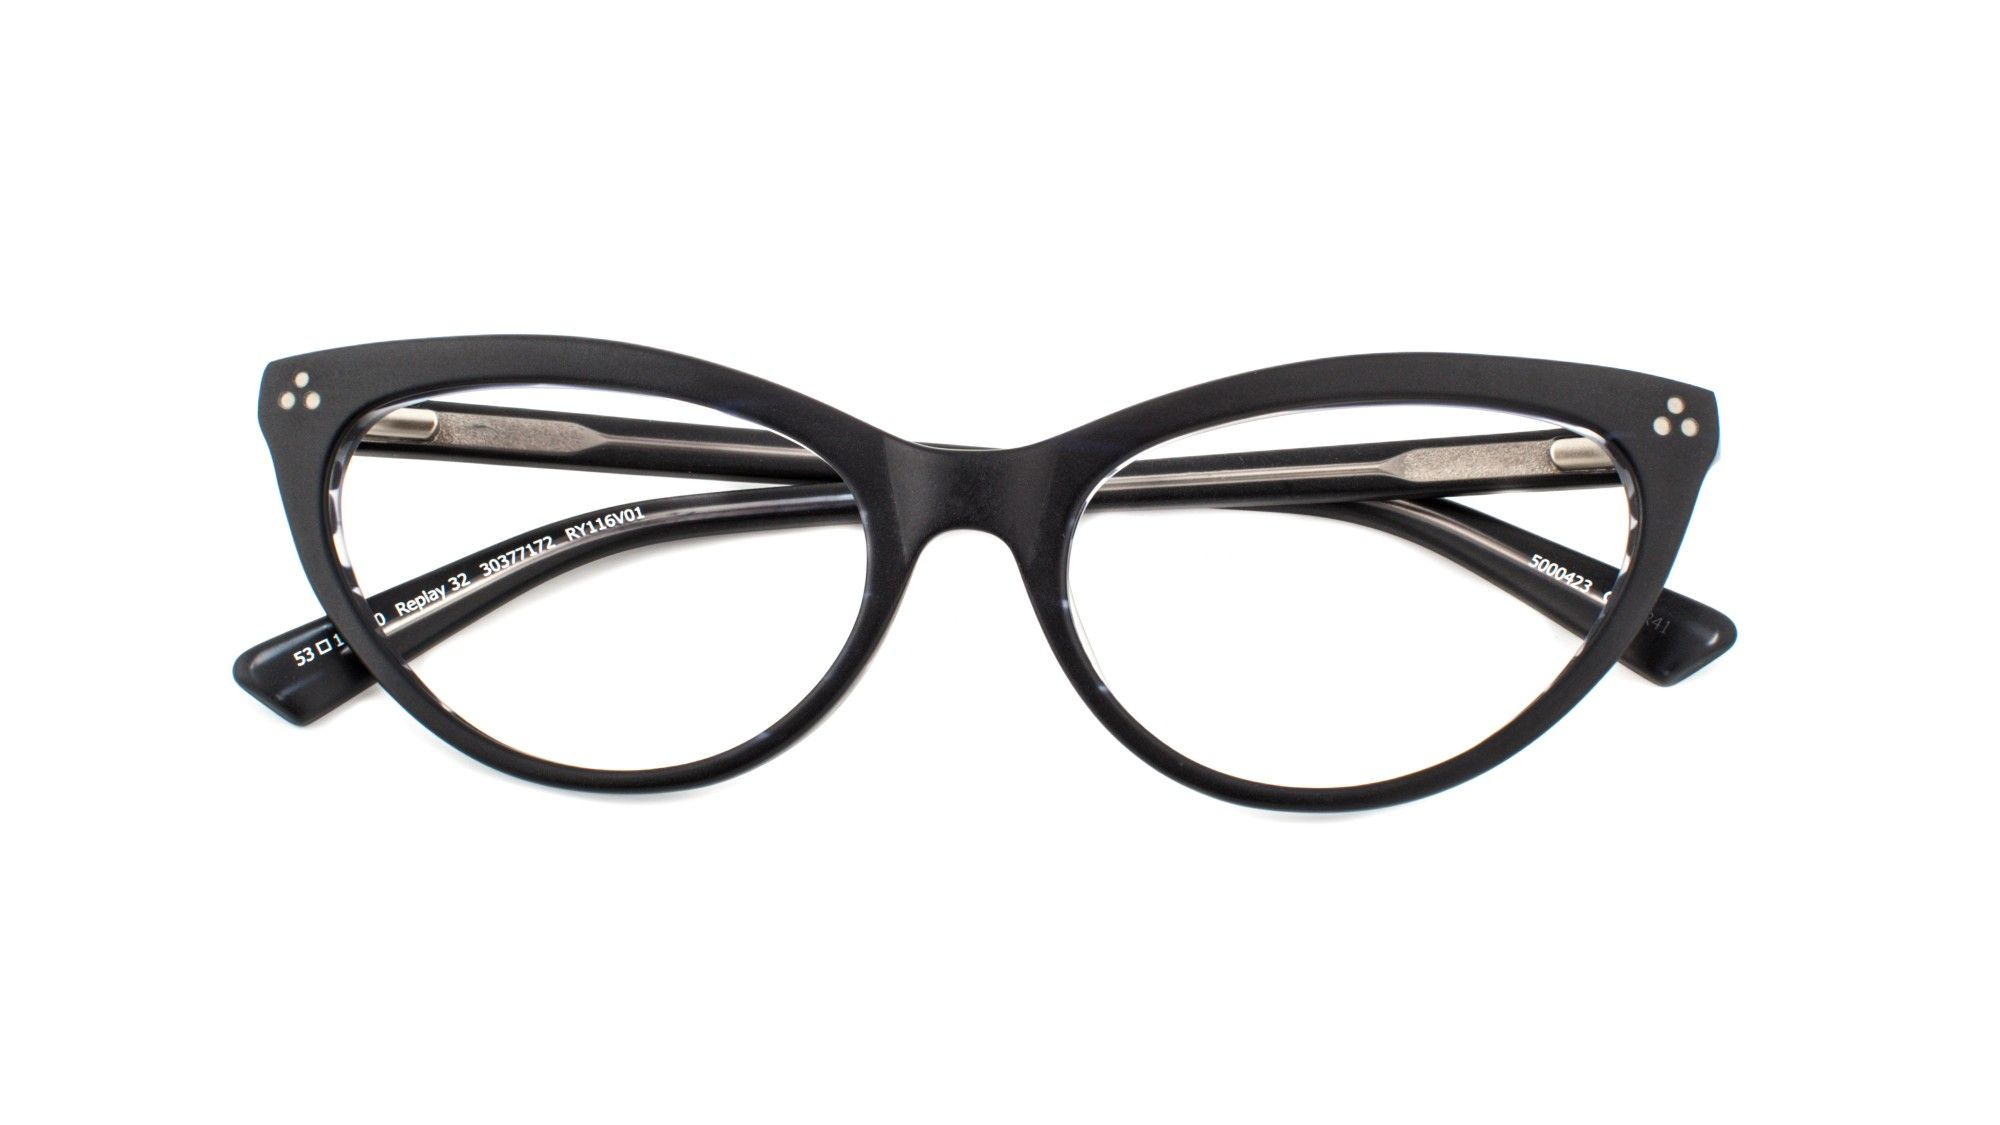 Replay REPLAY 32 glasses from Specsavers | Womens designer